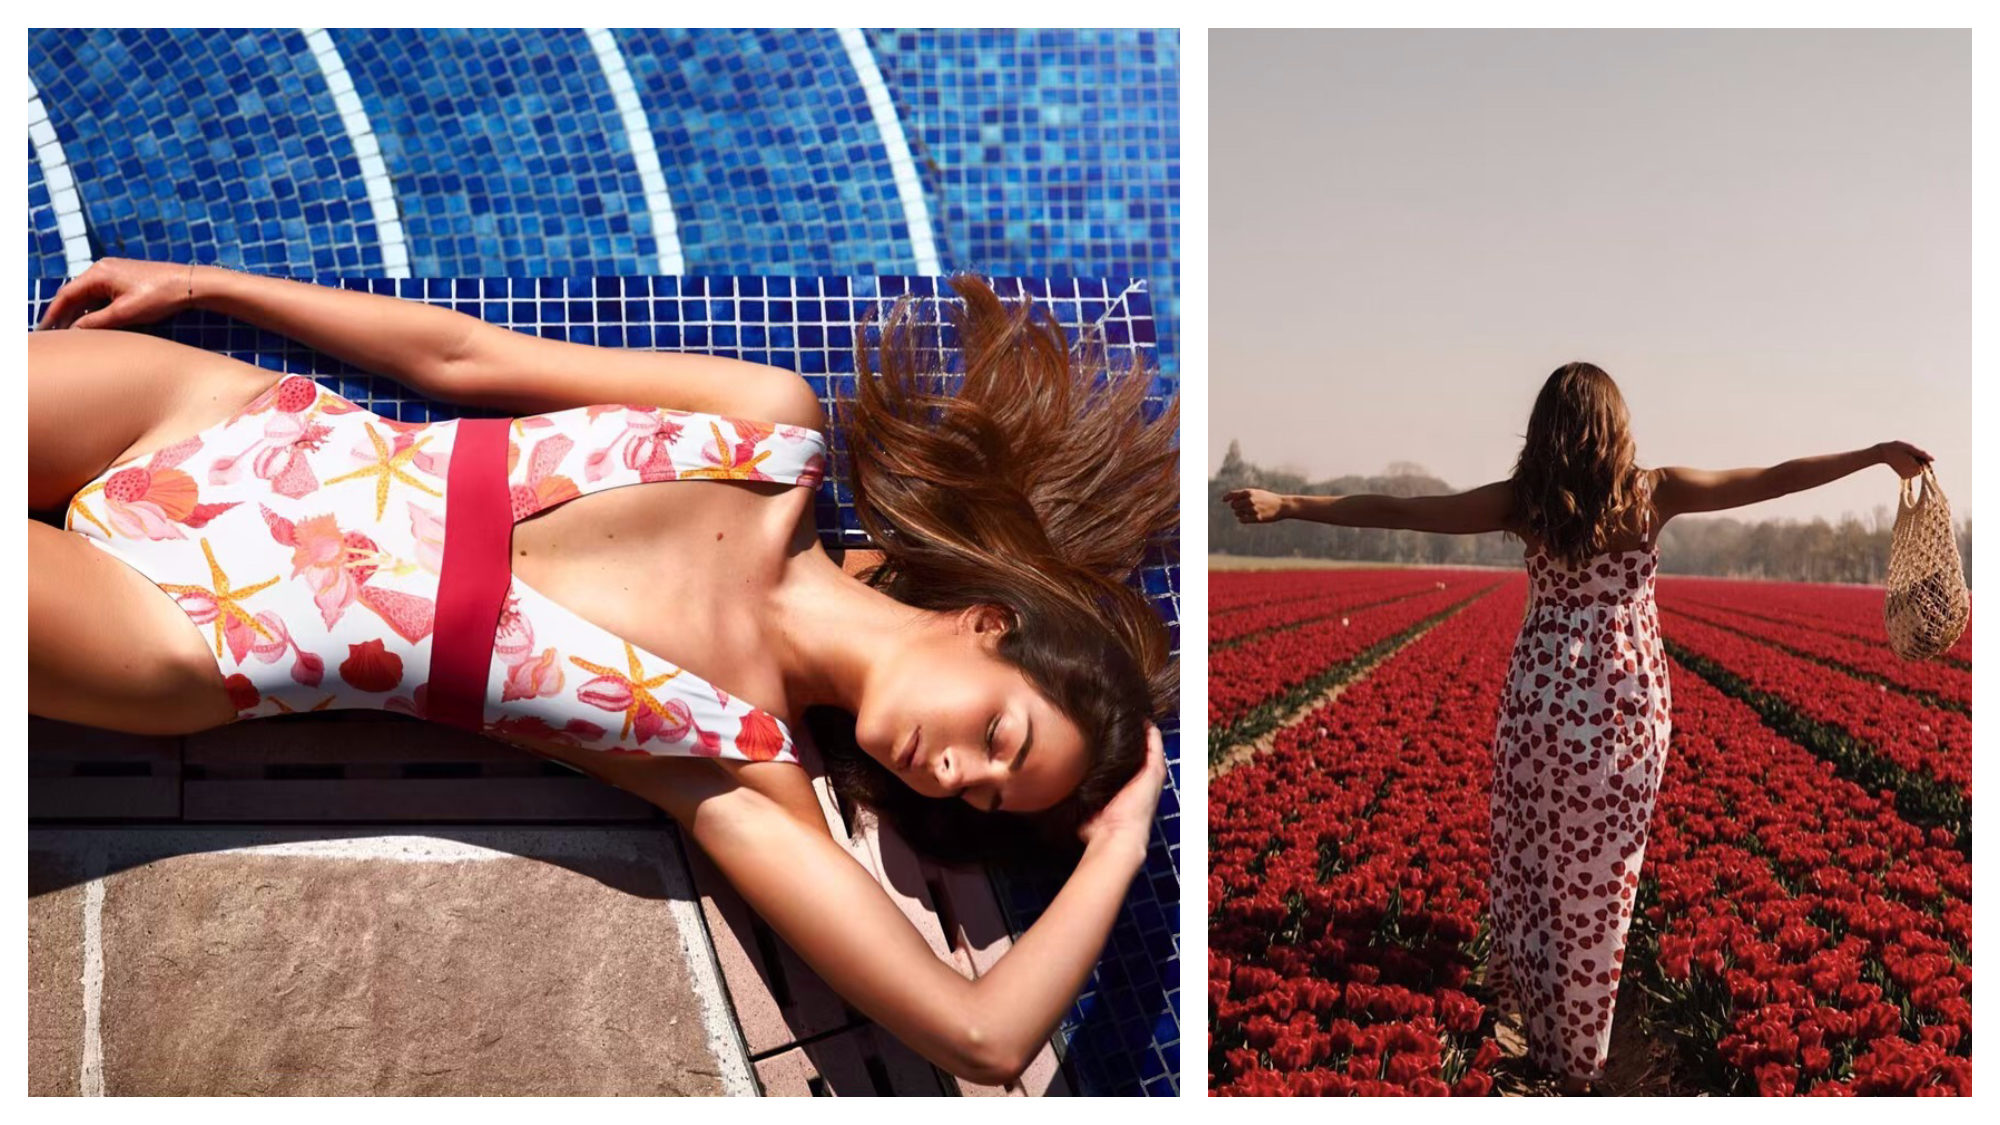 A woman wears a red and white seashell themed swimsuit as she lies down by a blue pool (left). A woman seen from the back wears a long heart-print summer dress and raises her arms as she walks through red flower fields (right). Both outfits are from one of our favorite fashion brands Soi Paris.